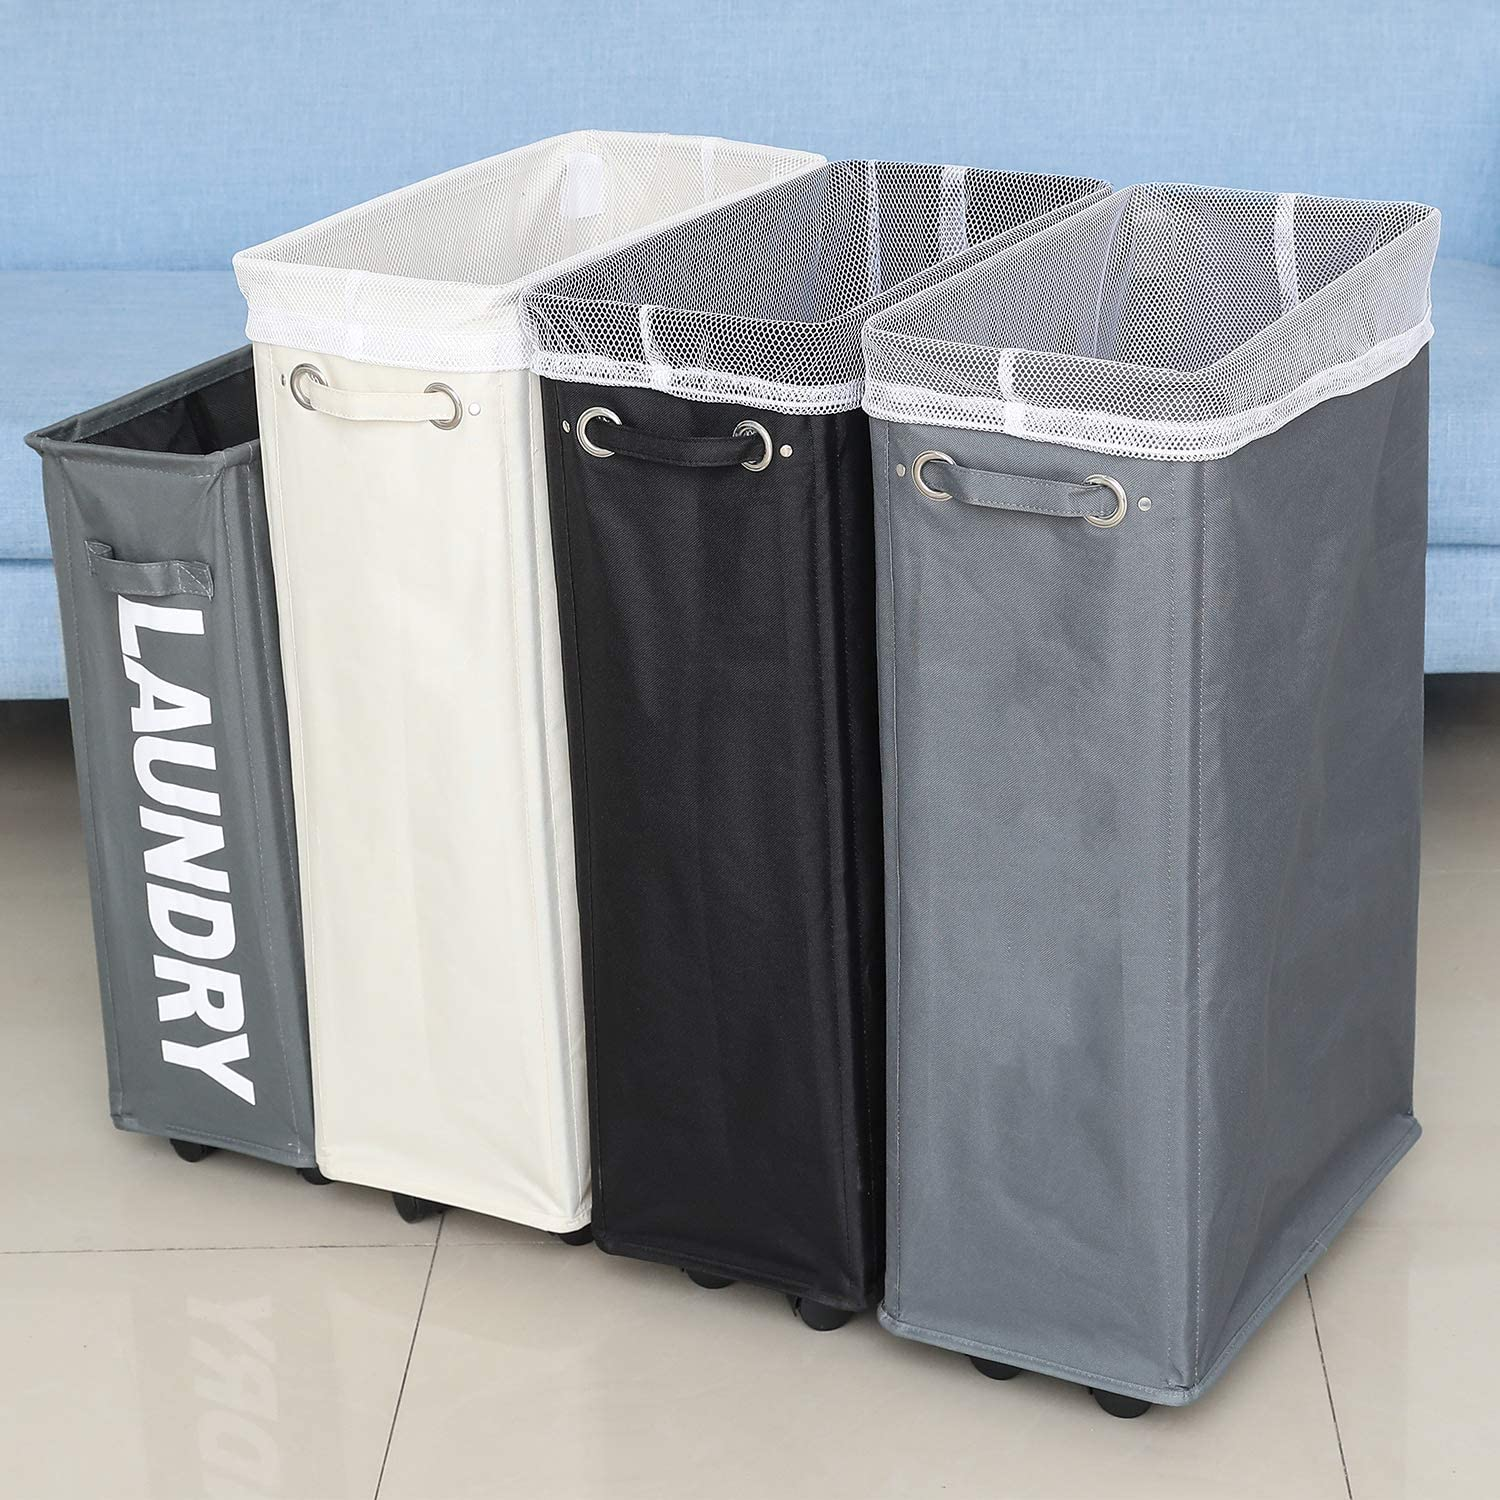 Rolling Laundry Basket Collapsible Tall Slim Laundry Hamper with Washable /& Breathable Mesh Liner Waterproof /& Dustproof Laundry Cart on Wheels Caroeas Laundry Hamper Black